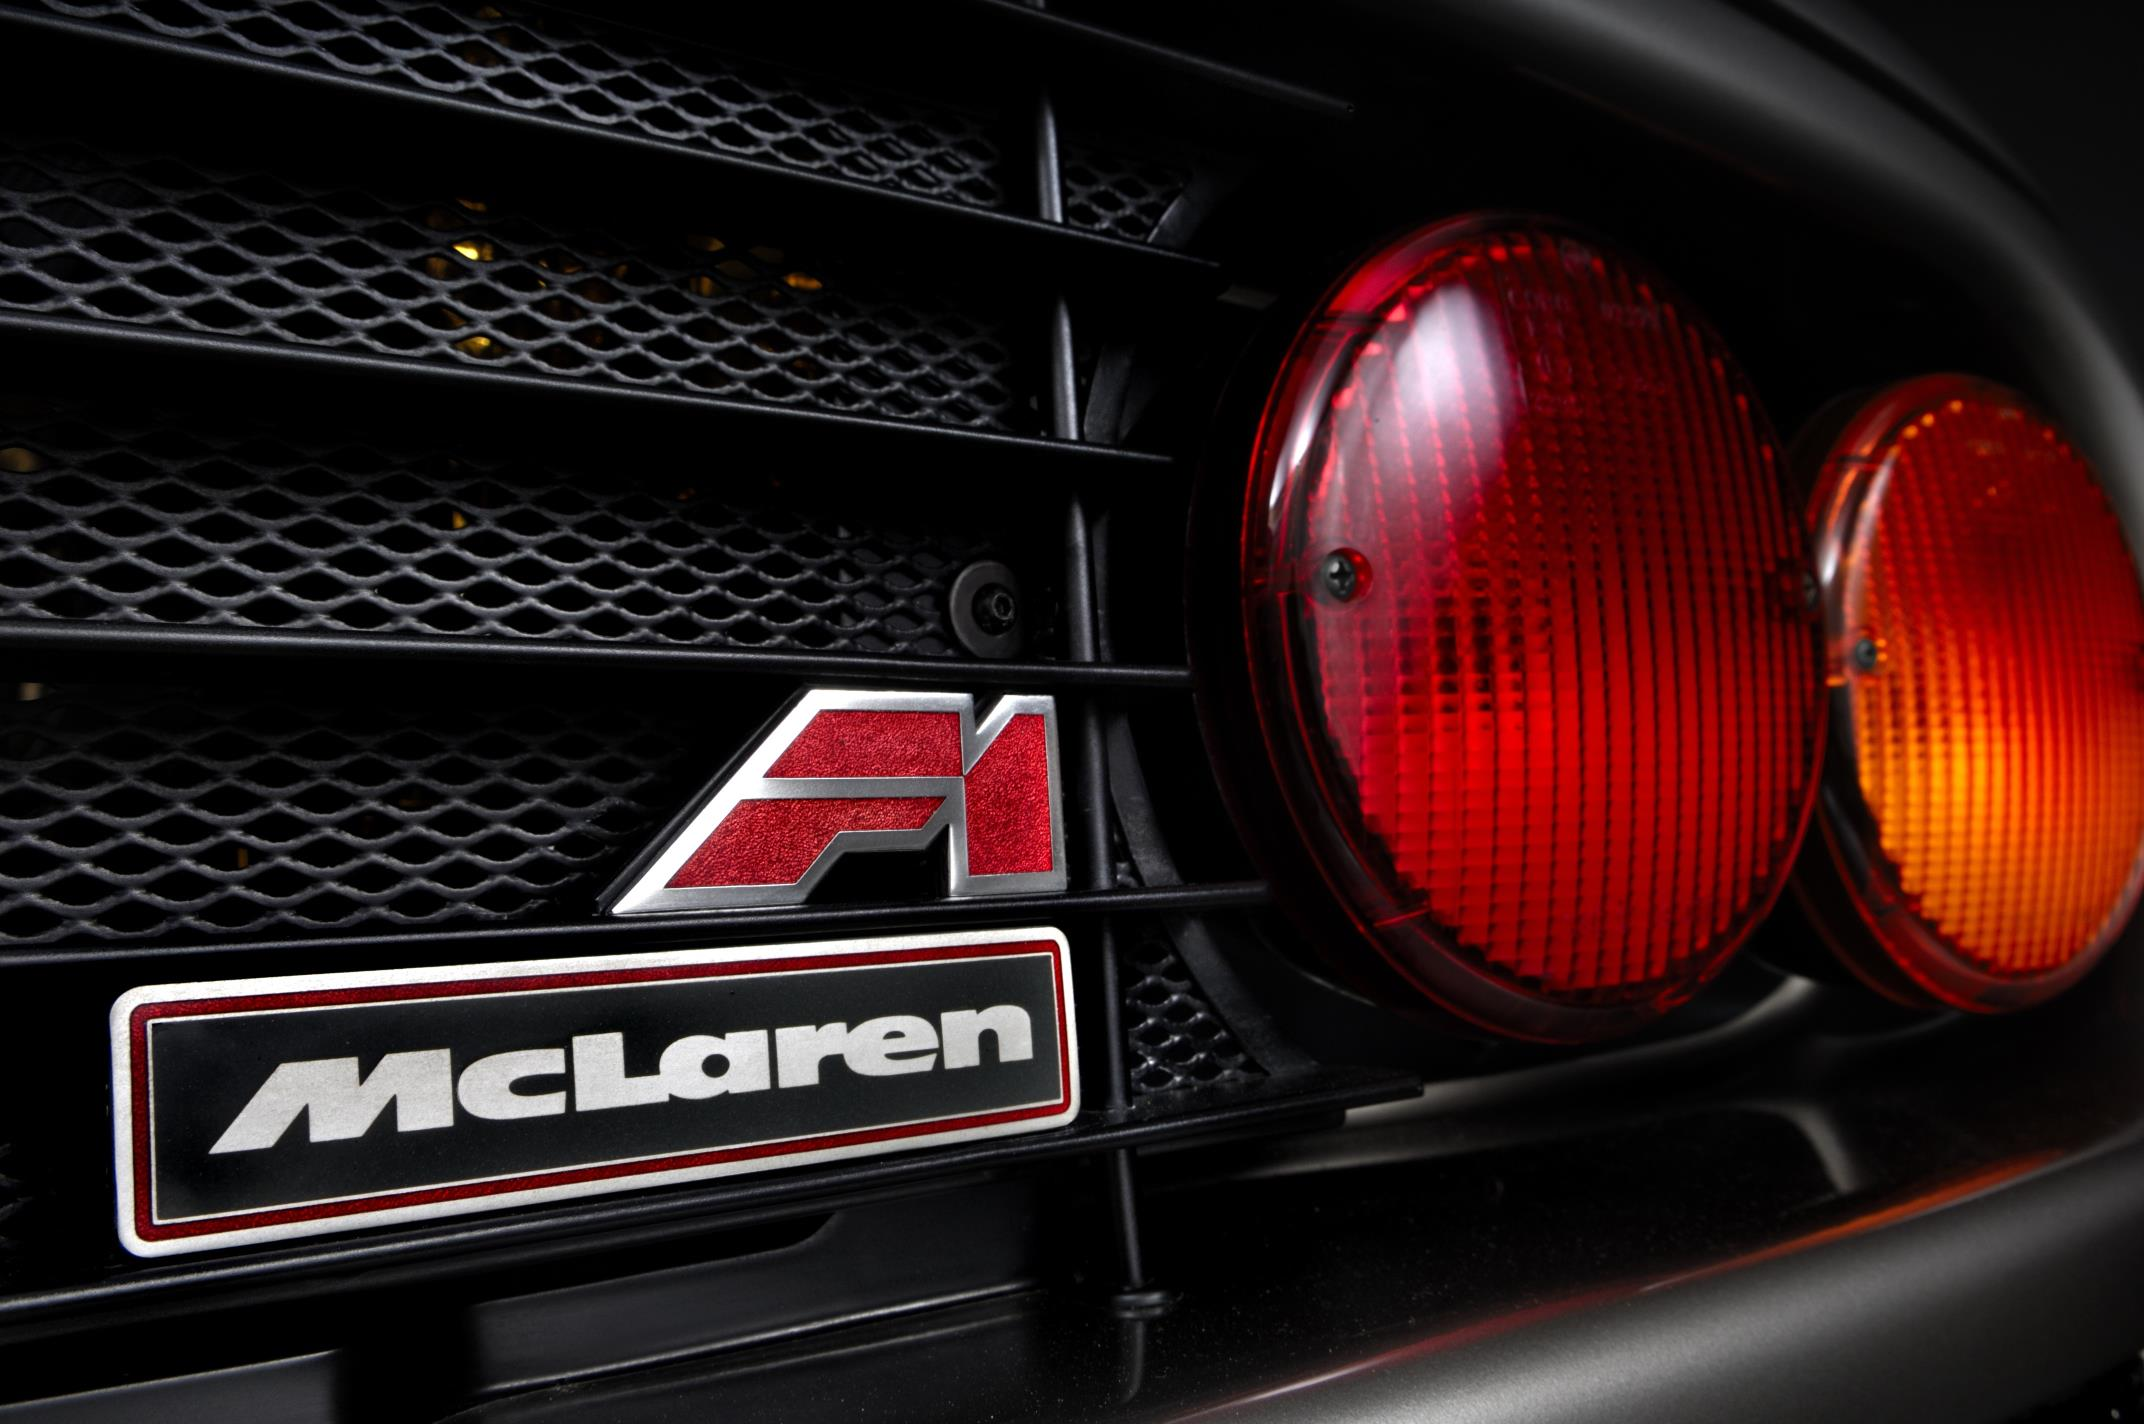 McLaren F1 rear badging and taillights